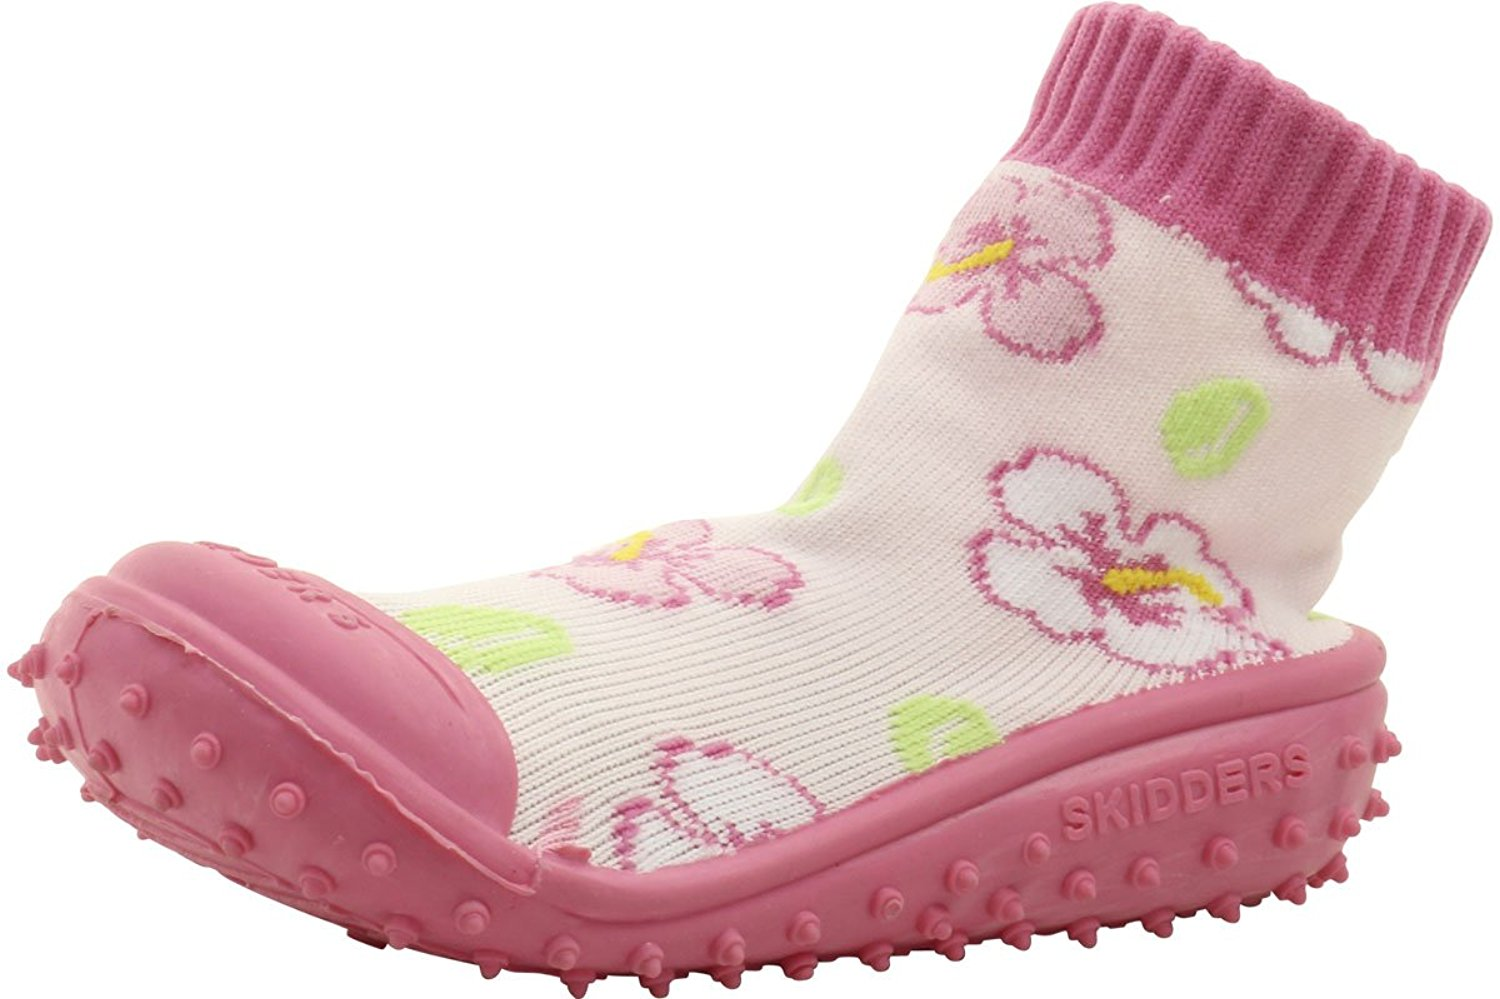 3d245b905dc0b5 Get Quotations · Skidders Infant Toddler Girl s Skidproof Hibiscus Toss  Pink Sneakers Shoes